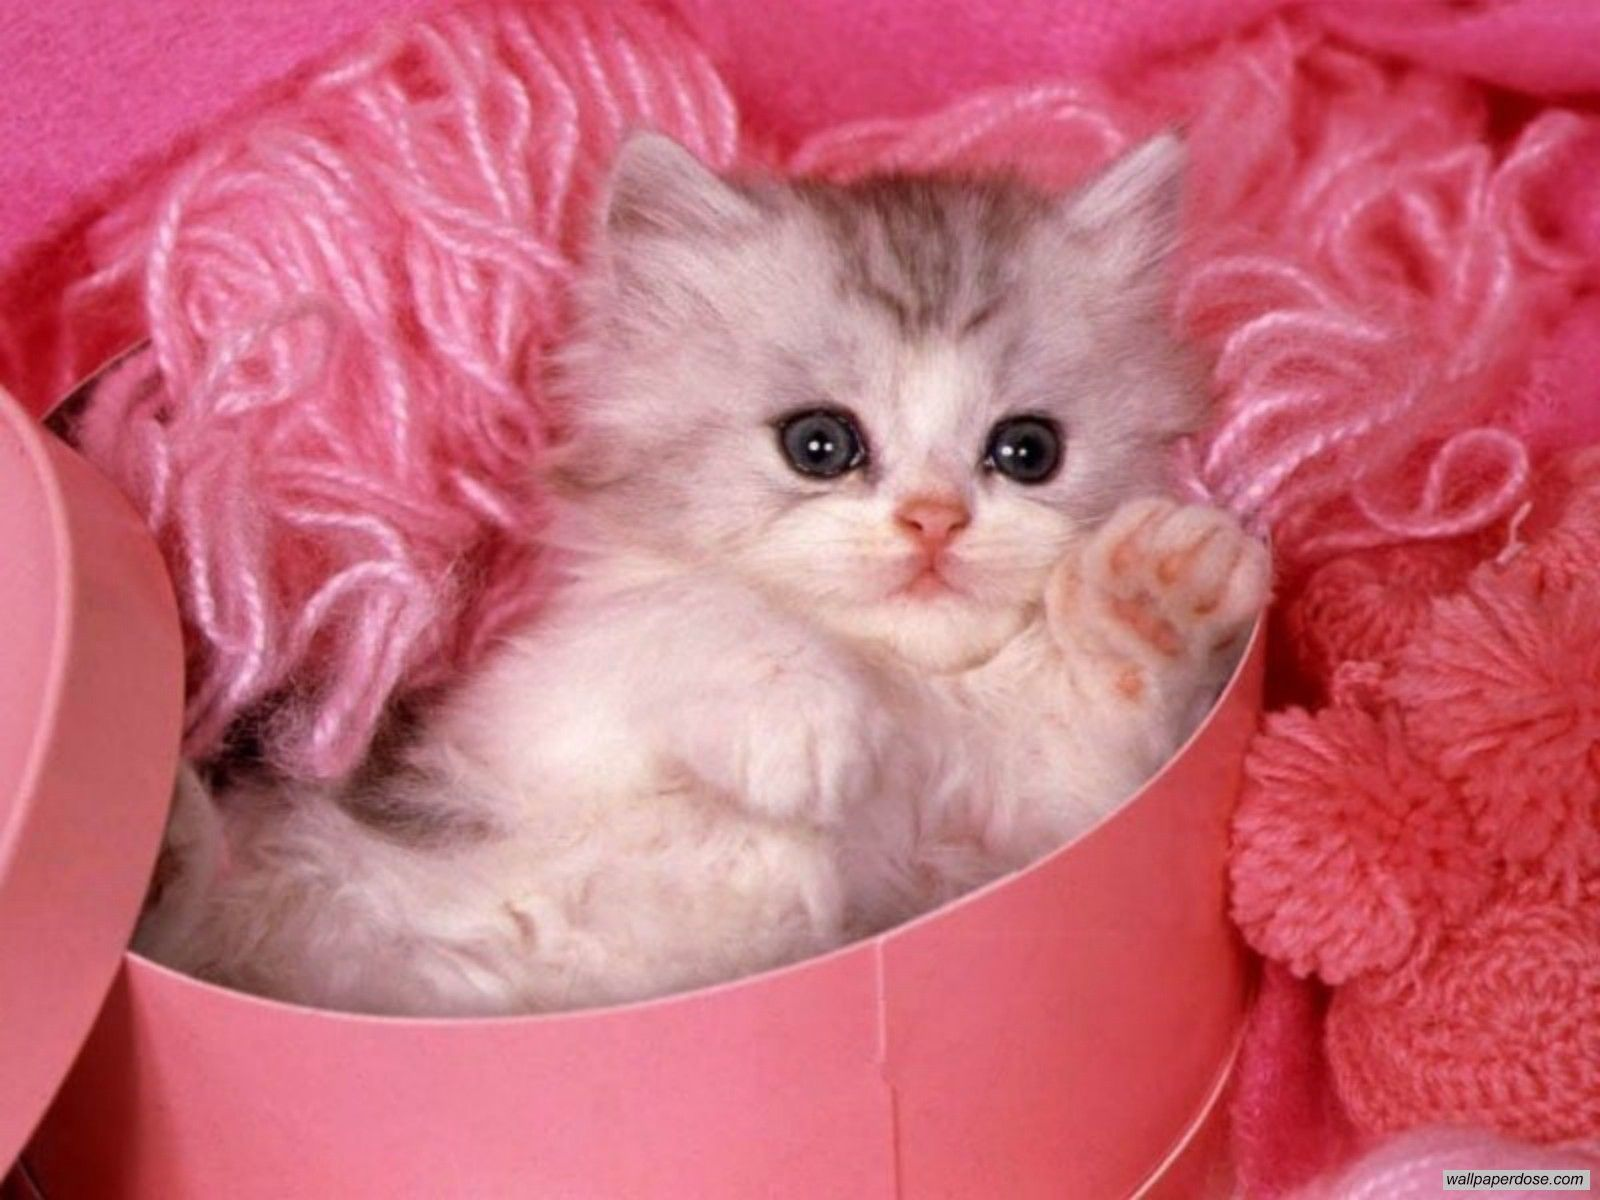 Cats Images Kitten Pretty In Pink Hd Wallpaper And Background Photos Cute Cat Wallpaper Cute Cats And Dogs Kittens Cutest